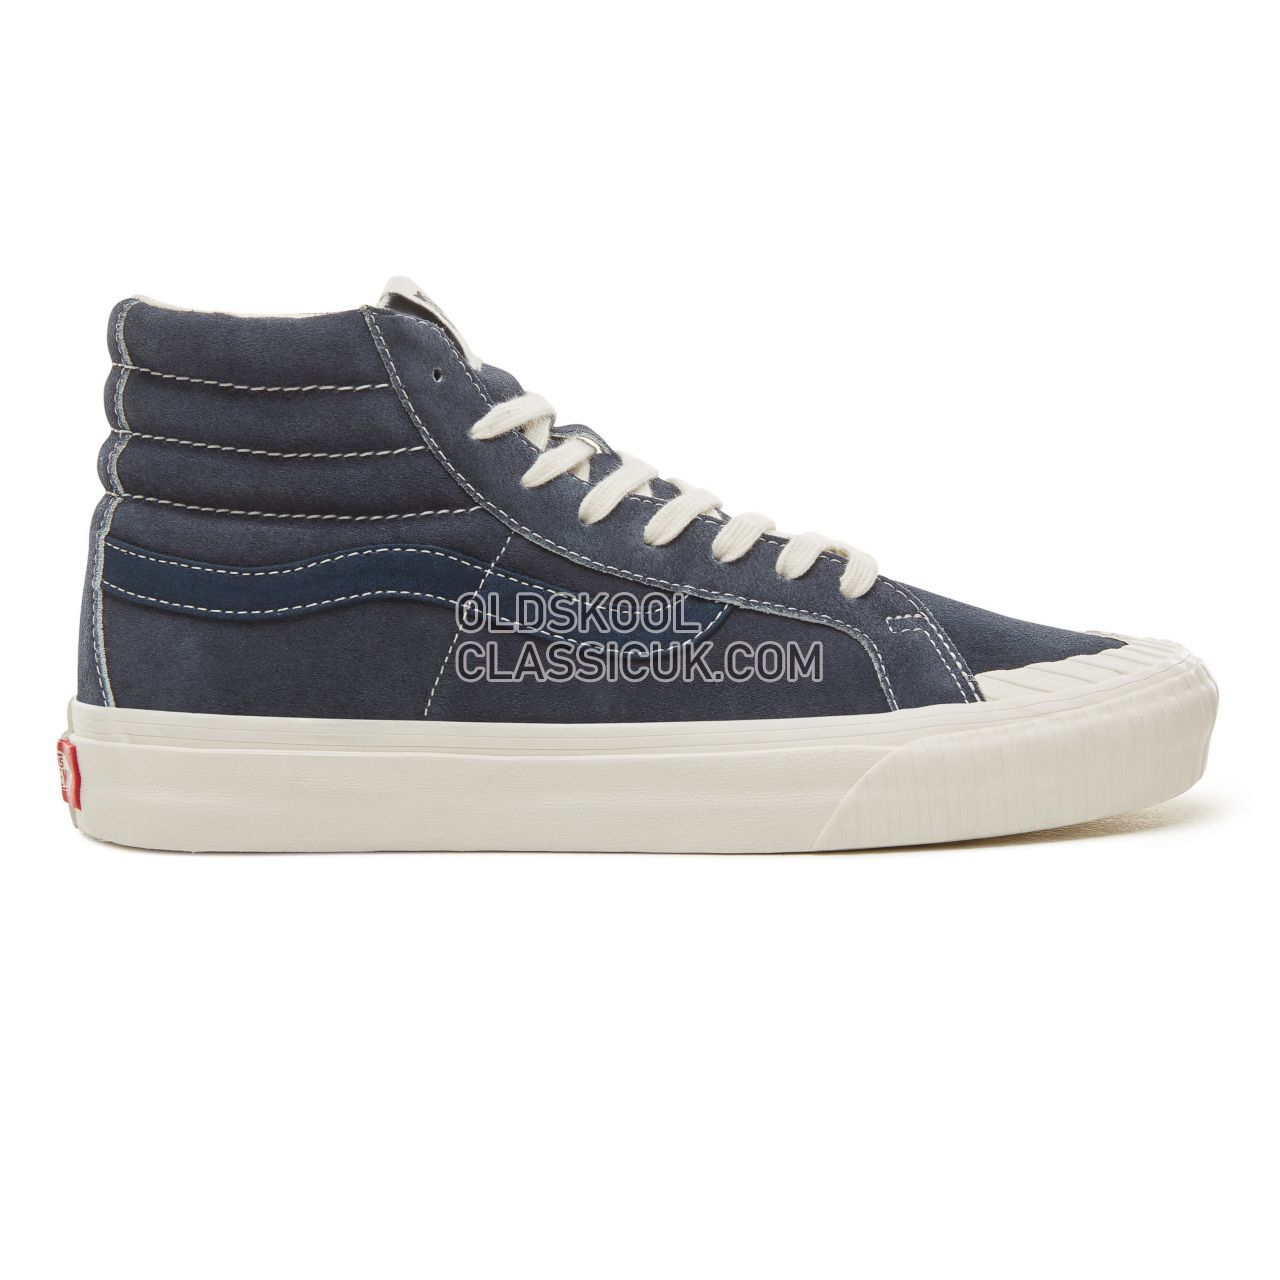 Vans Suede Vintage Military Sk8-Hi Reissue 138 Sneakers Mens (Vintage Military) Dress Blues VA3TKPUCJ Shoes